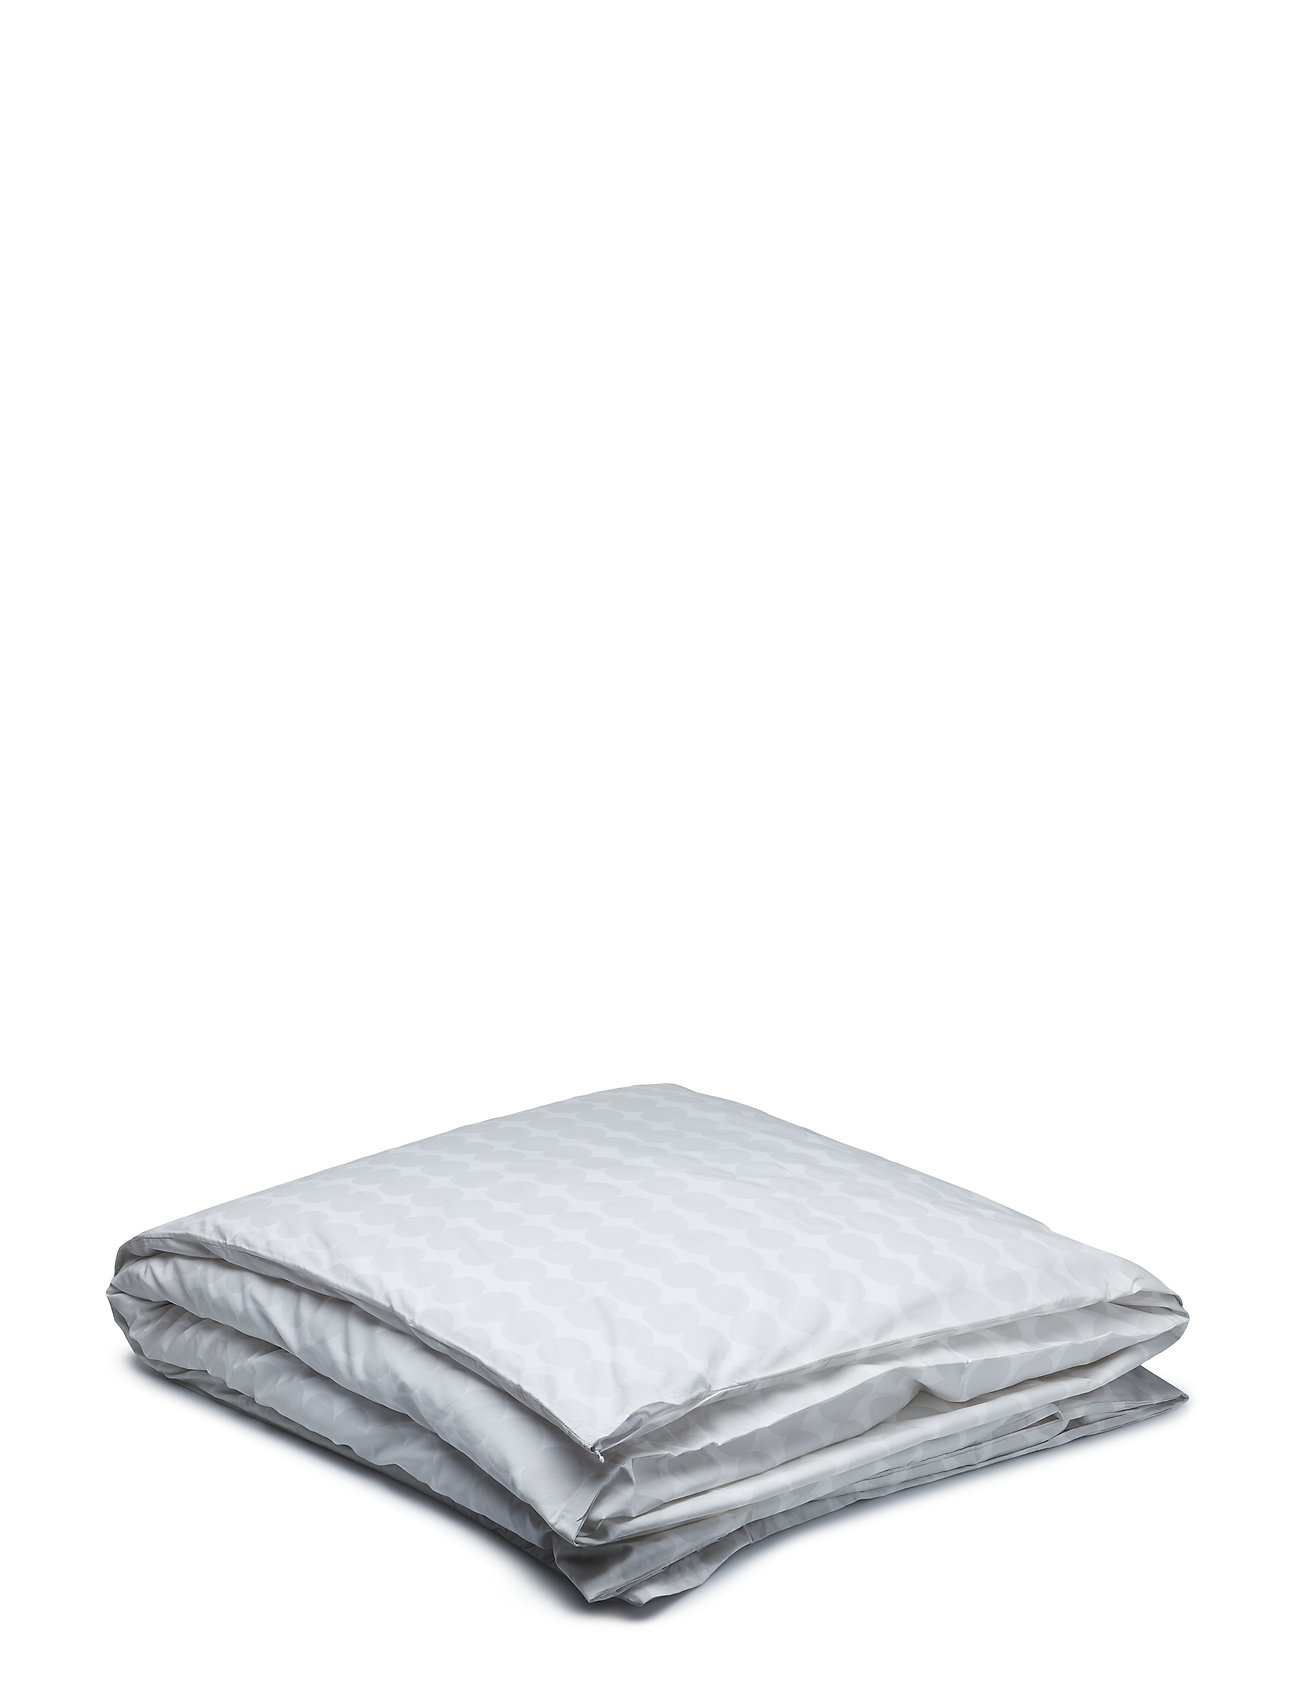 Marimekko Home RÄSYMATTO DUVET COVER - WHITE, LIGHT GREY